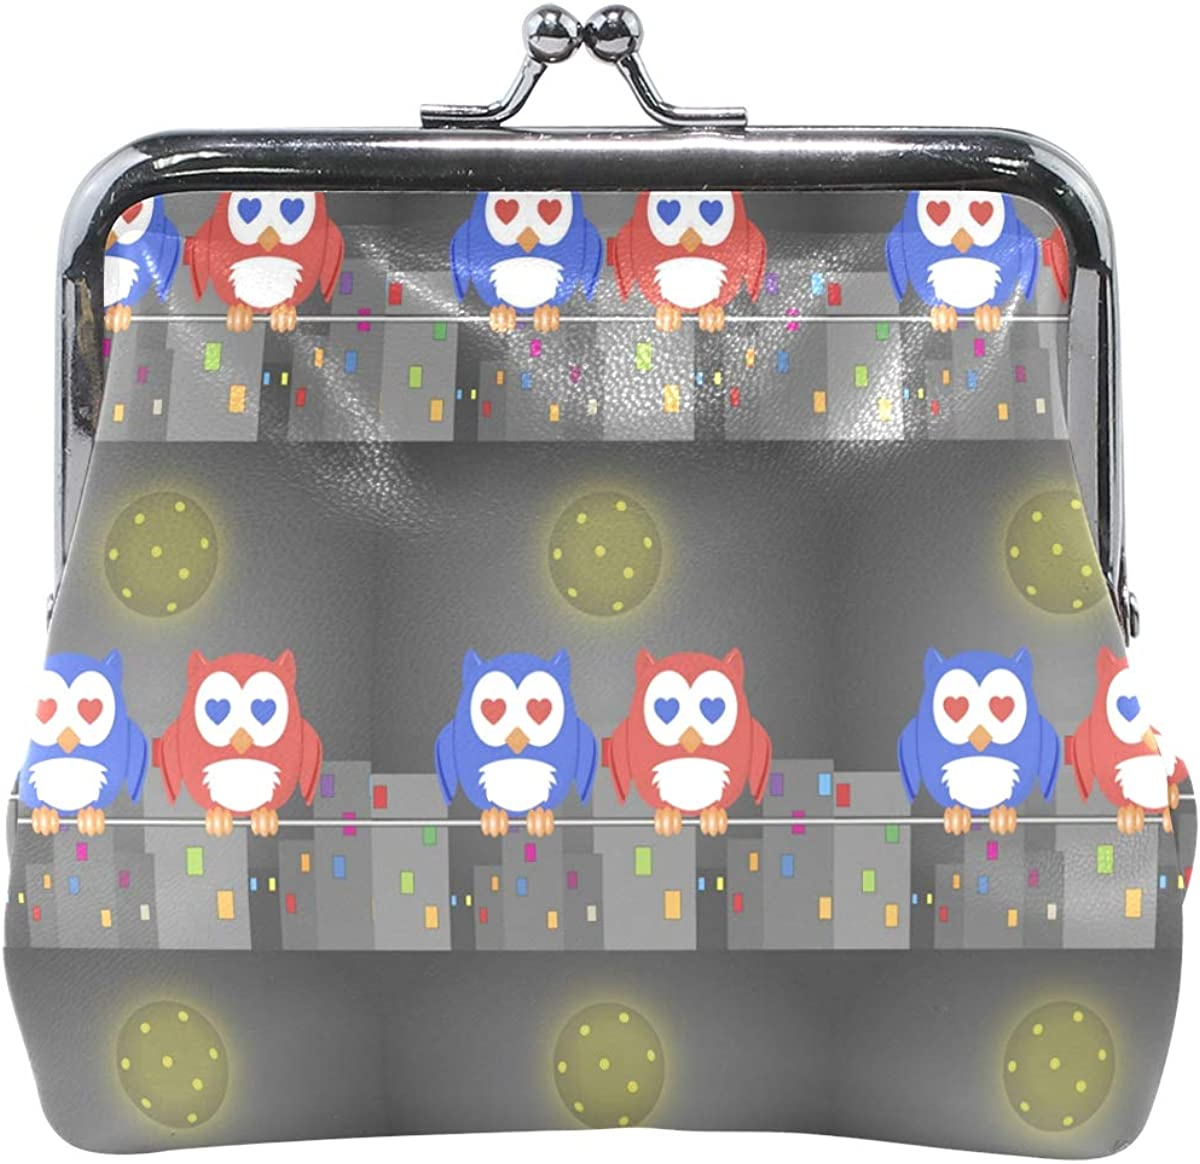 Handbag Clutch Womens Owlet Two Lovers In The Night City Coin Purse Wallet